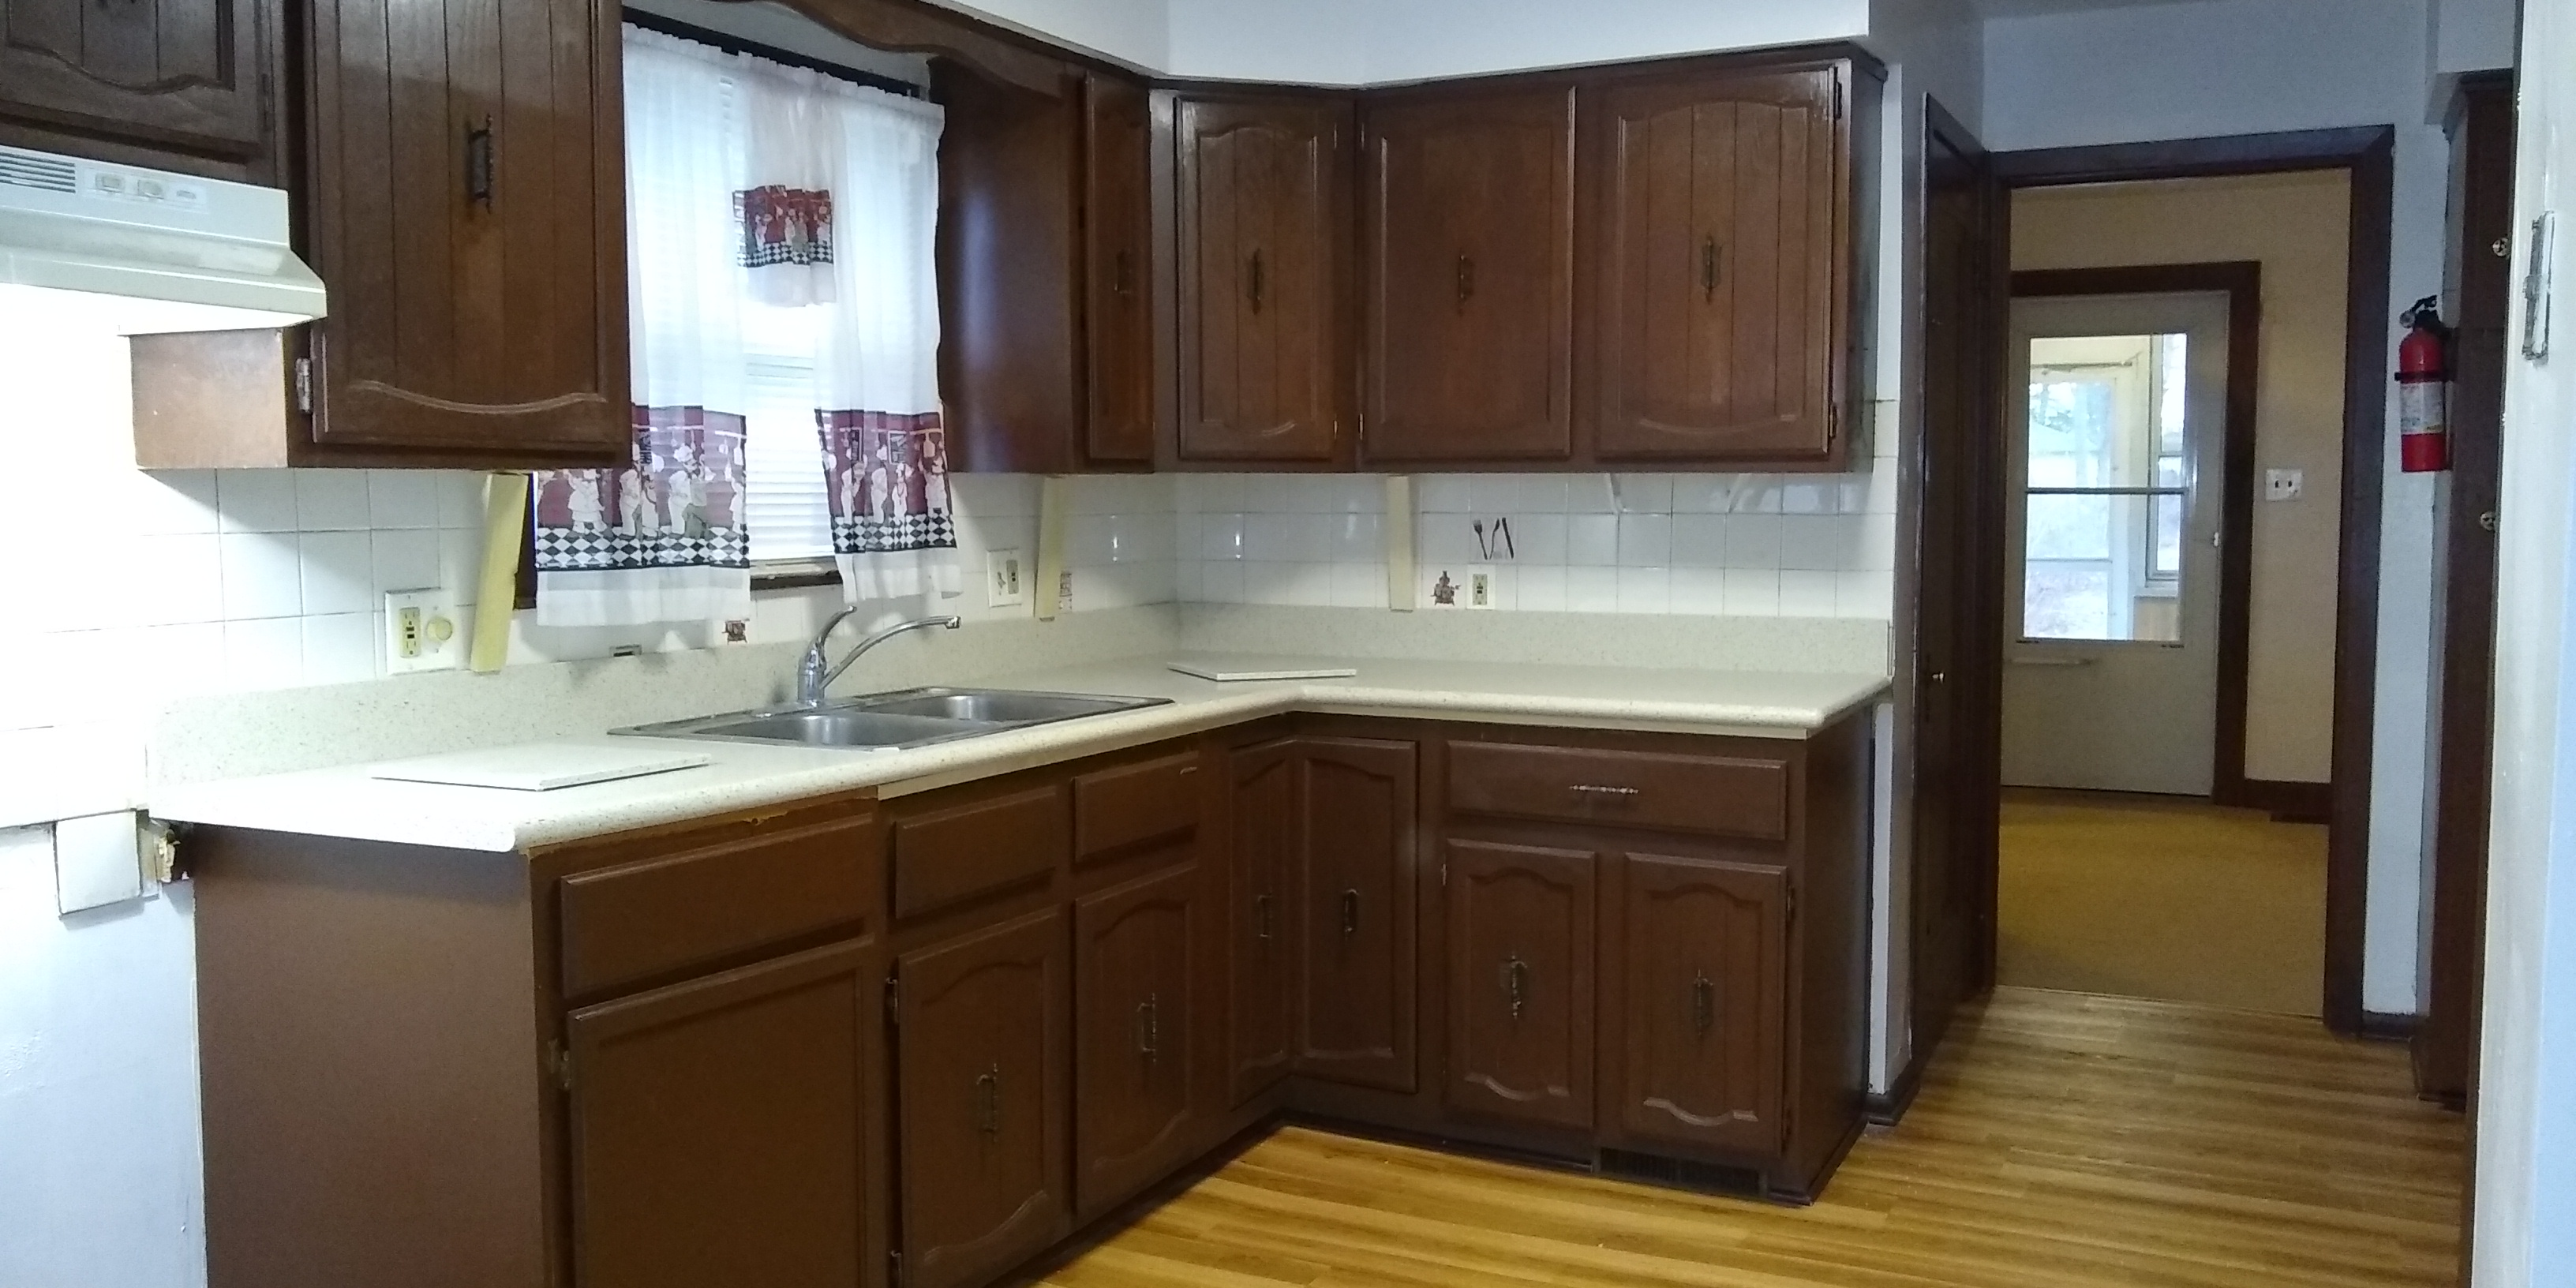 Kitchen with new countertop!